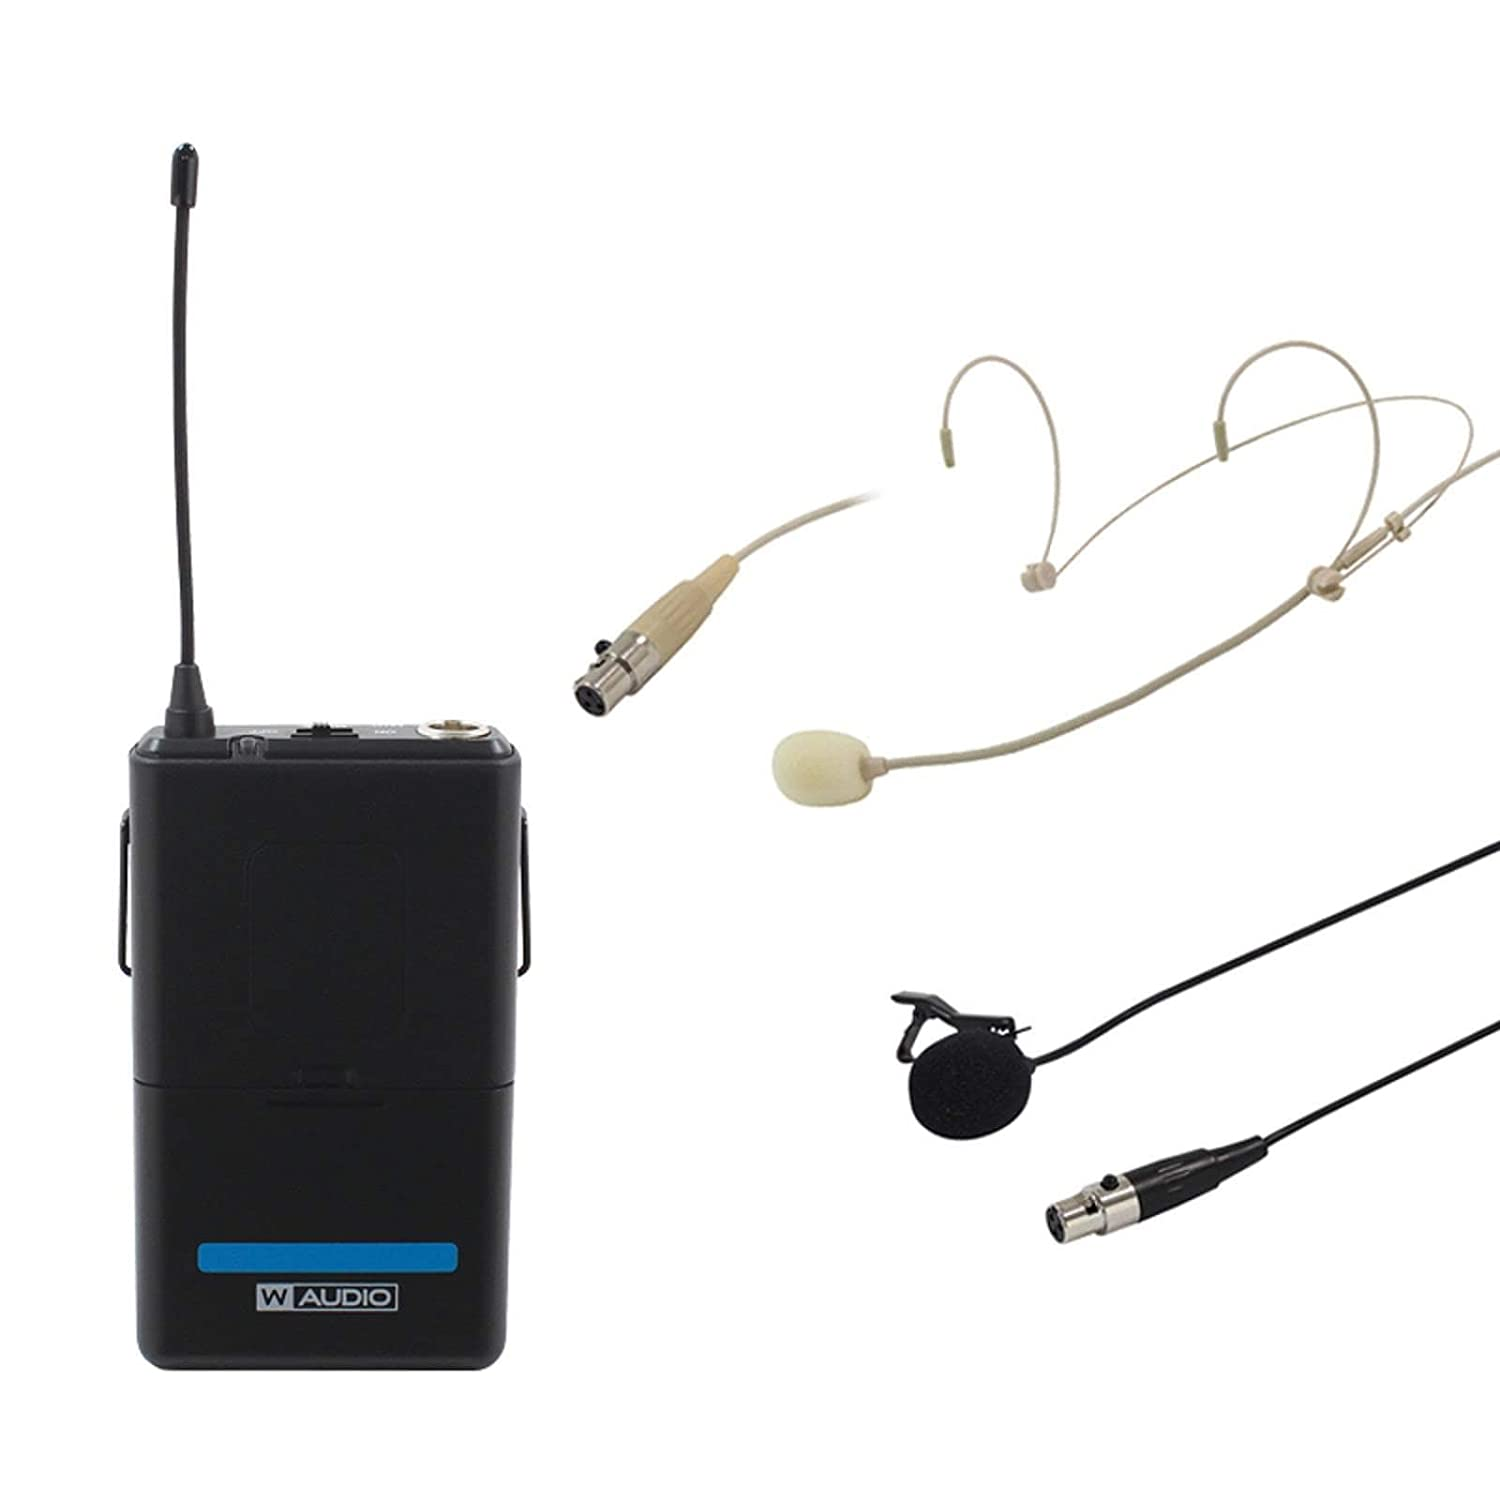 W Audio RM Quartet Clip de Corbata/Solapa Kit (863,42 Mhz): Amazon ...